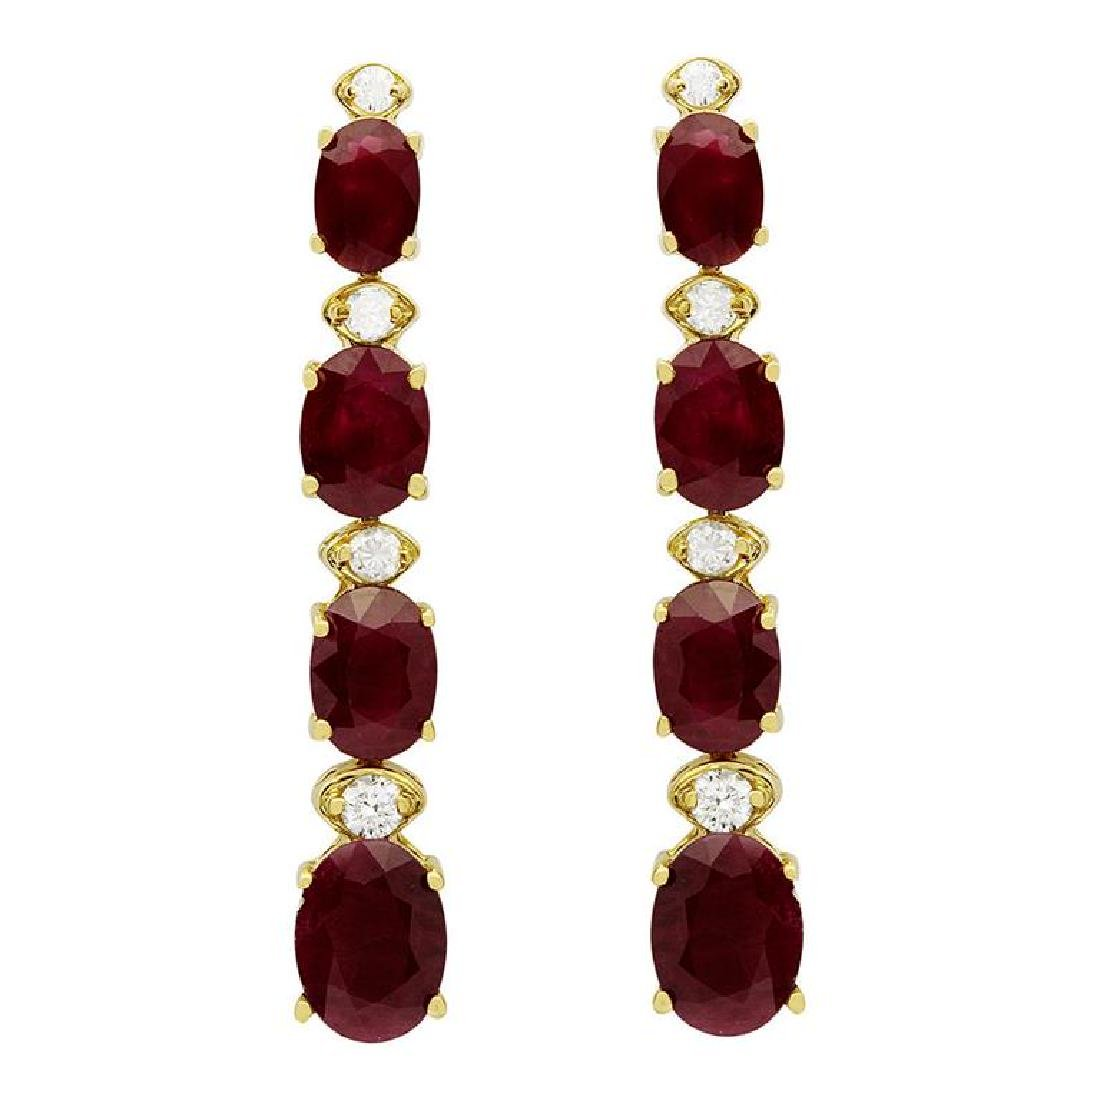 14k Yellow Gold 7.33ct Ruby 0.34ct Diamond Earrings